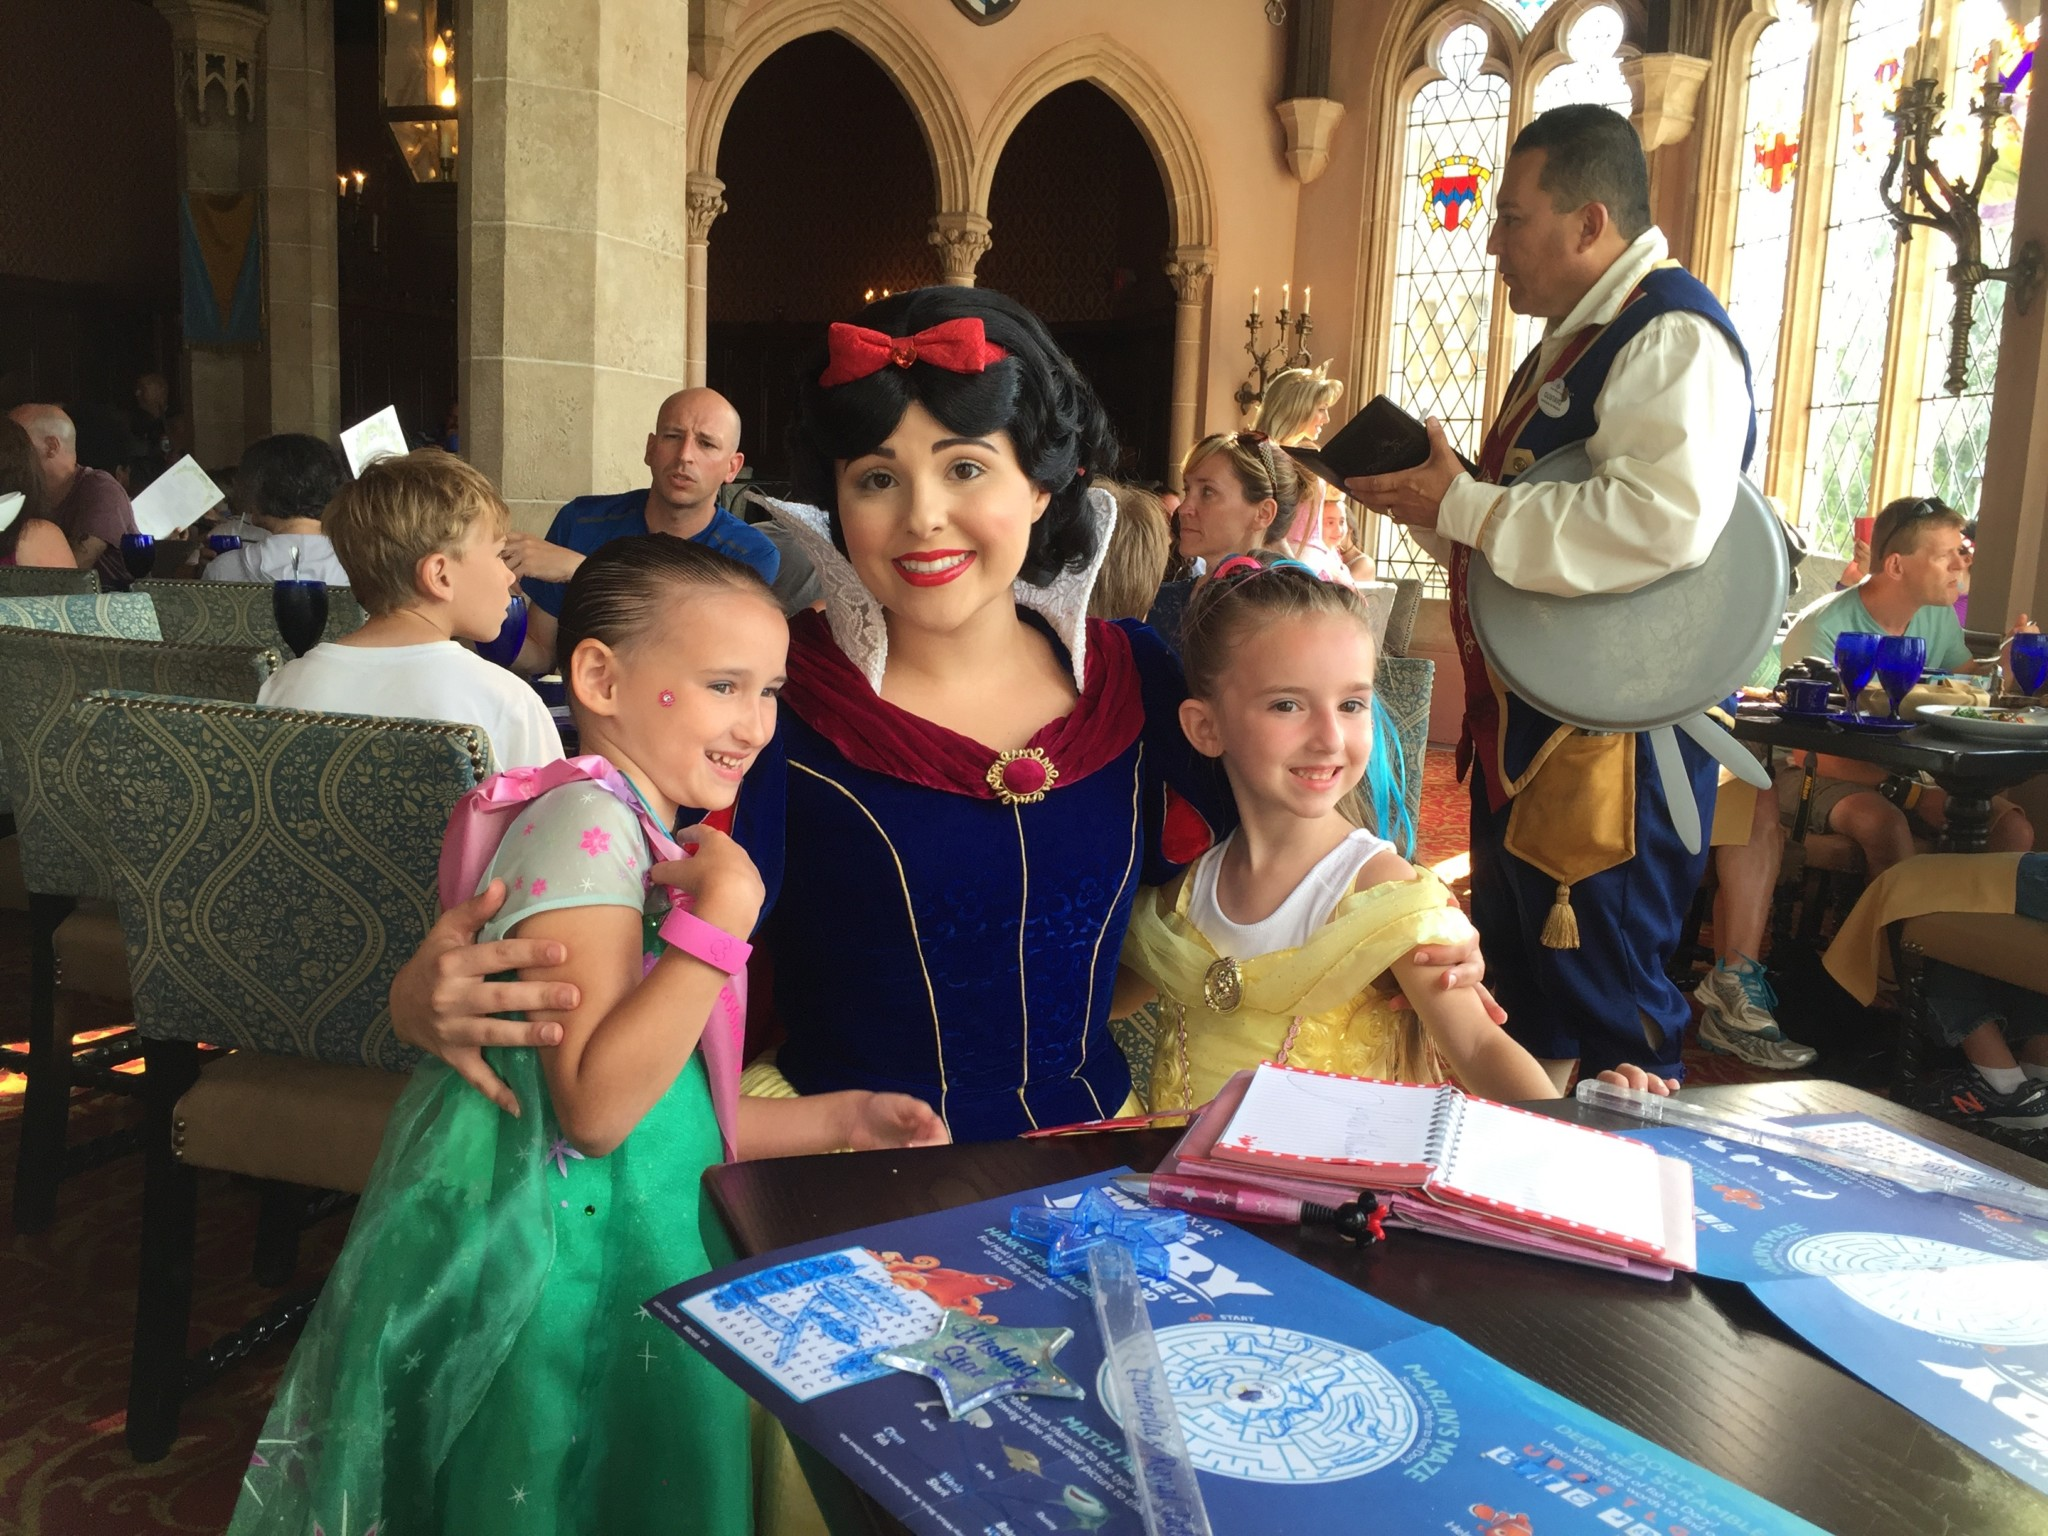 Snow White and the Girls at Magic Kingdom Royal Table